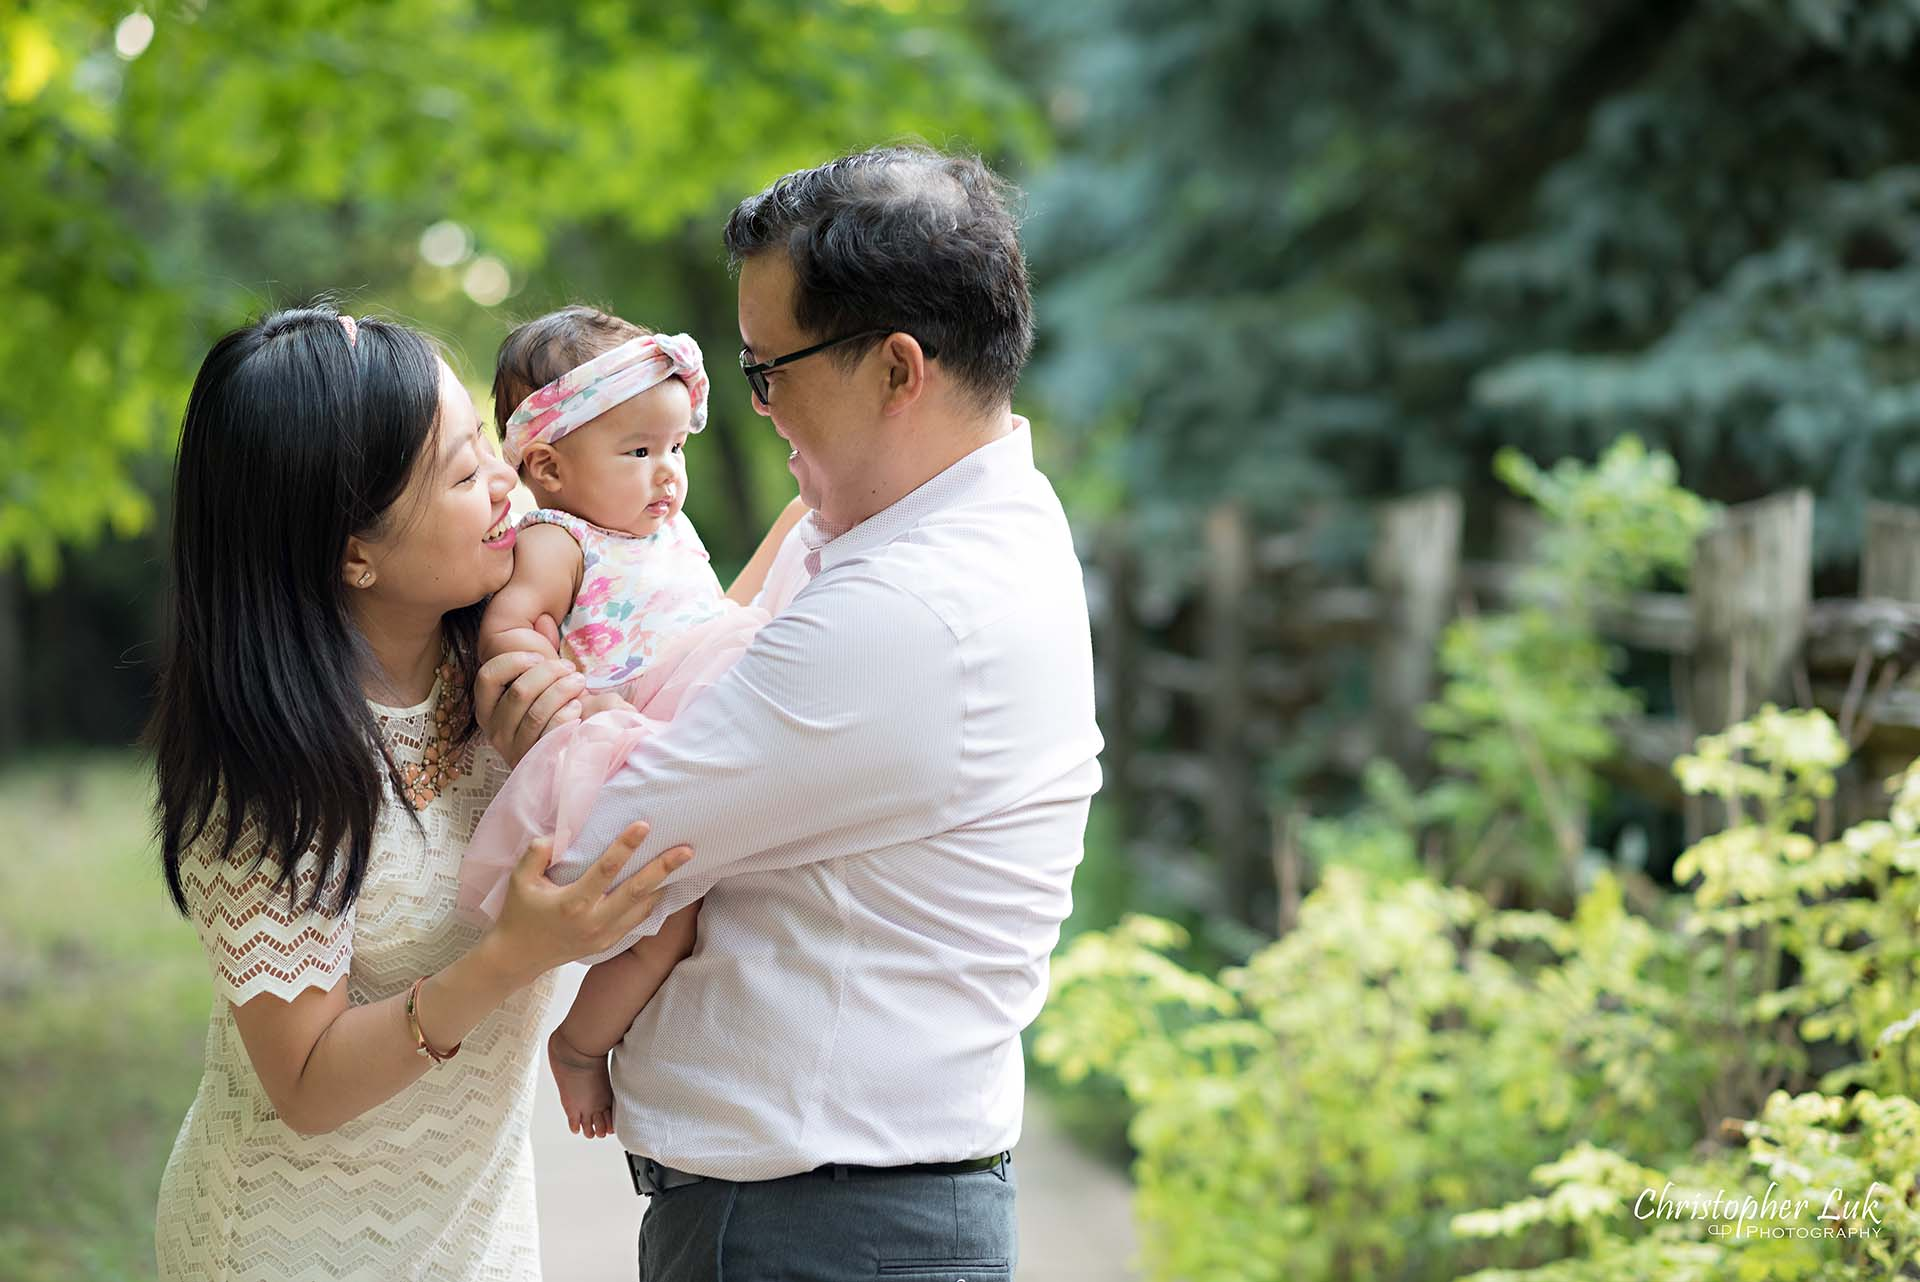 Christopher Luk Toronto Markham Family Children Photographer Candid Photojournalistic Candid Father Dad Baby Girl Daughter Adorable Cute Laugh Smile Mom Mother Hug